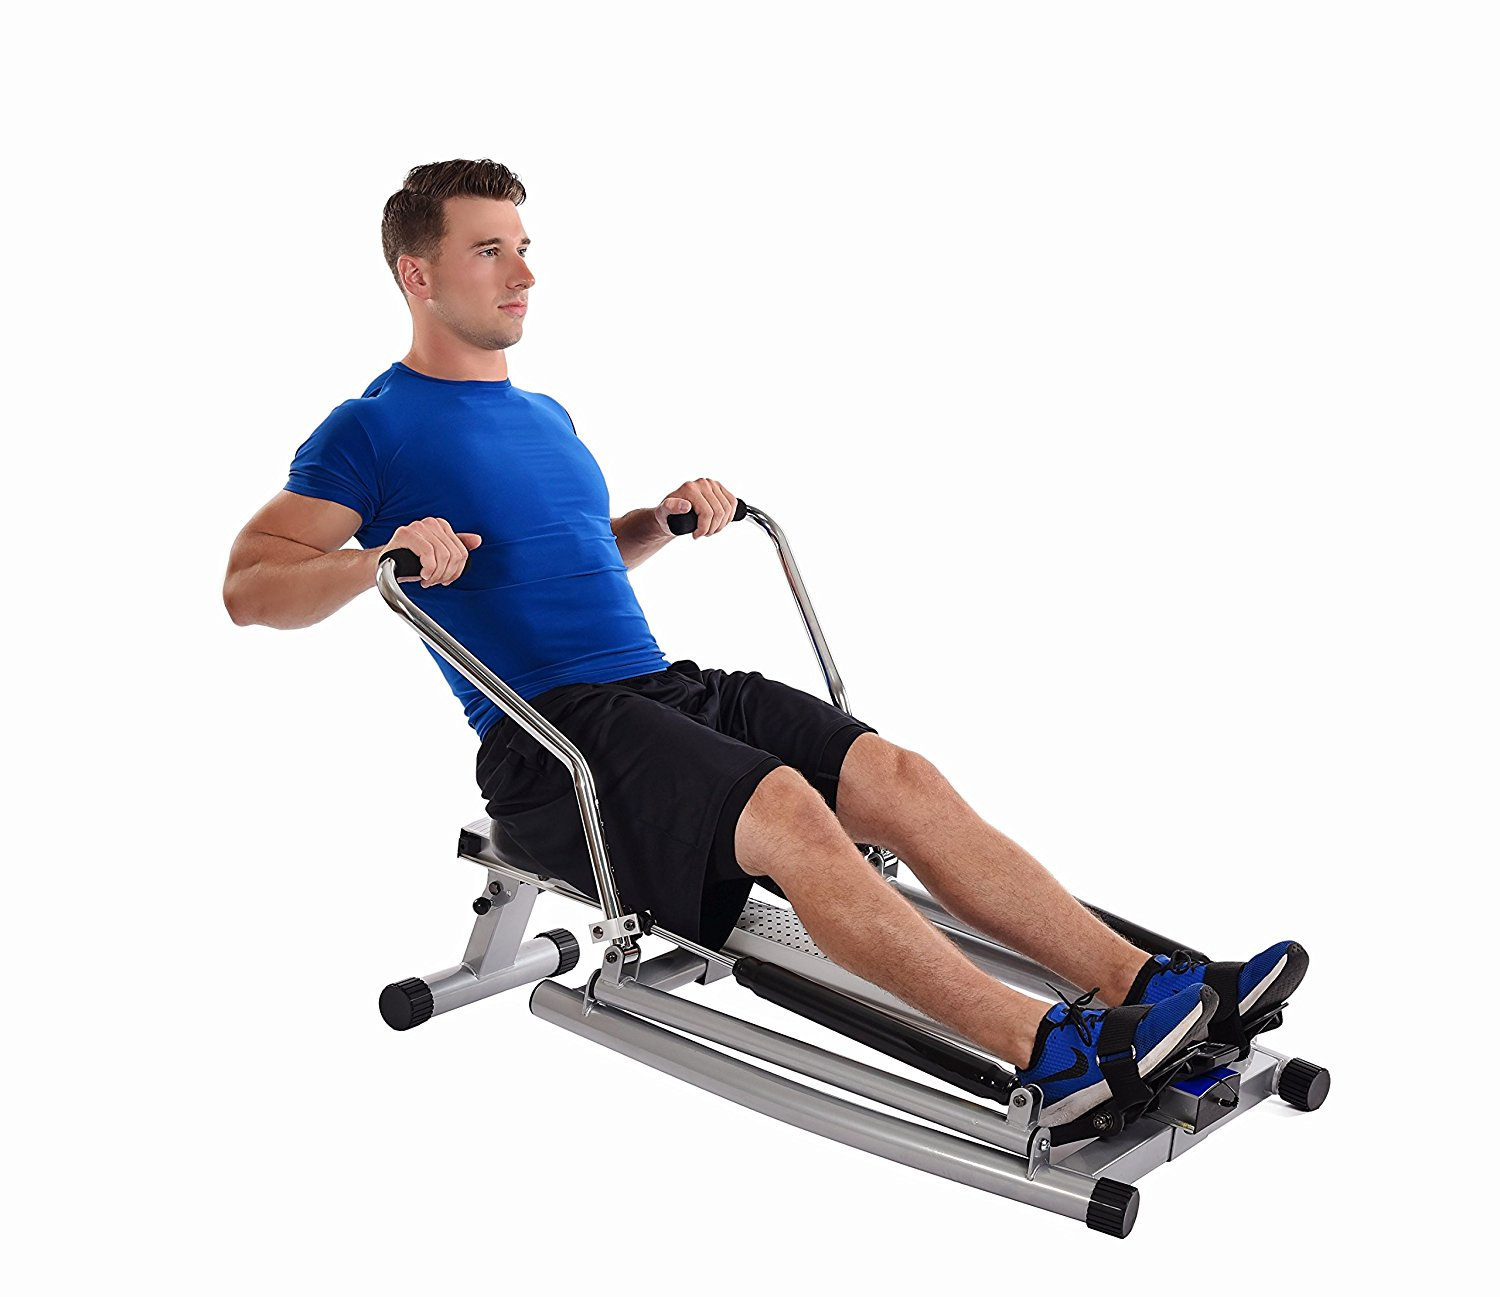 stamina 1215 orbital rowing machine review